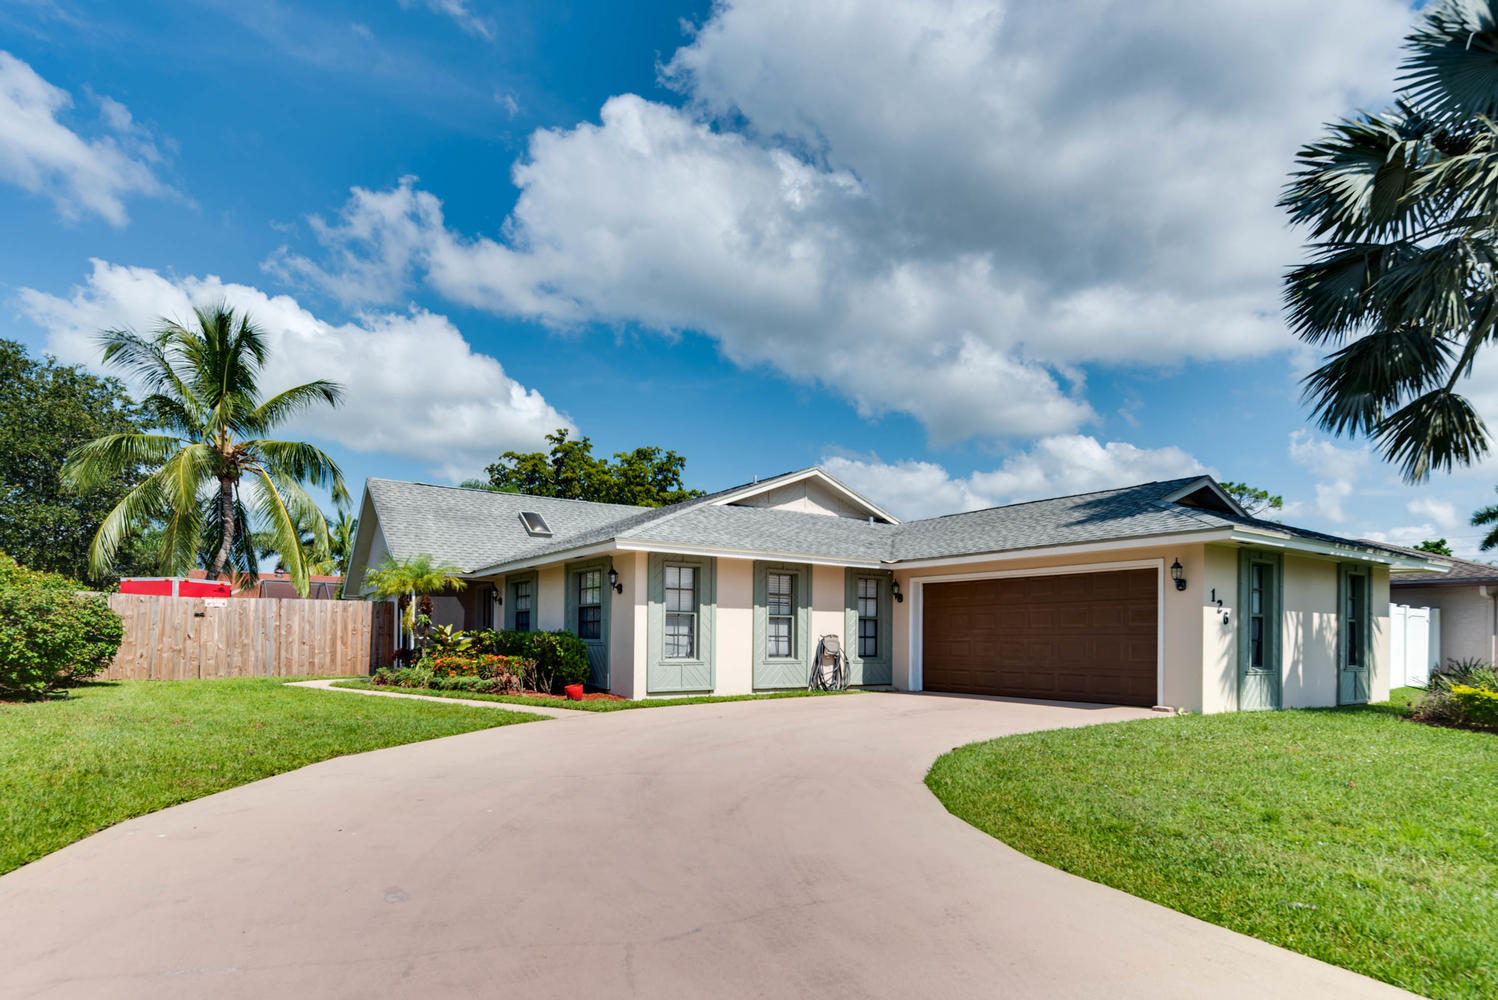 Home for sale in LA MANCHA TWO Royal Palm Beach Florida